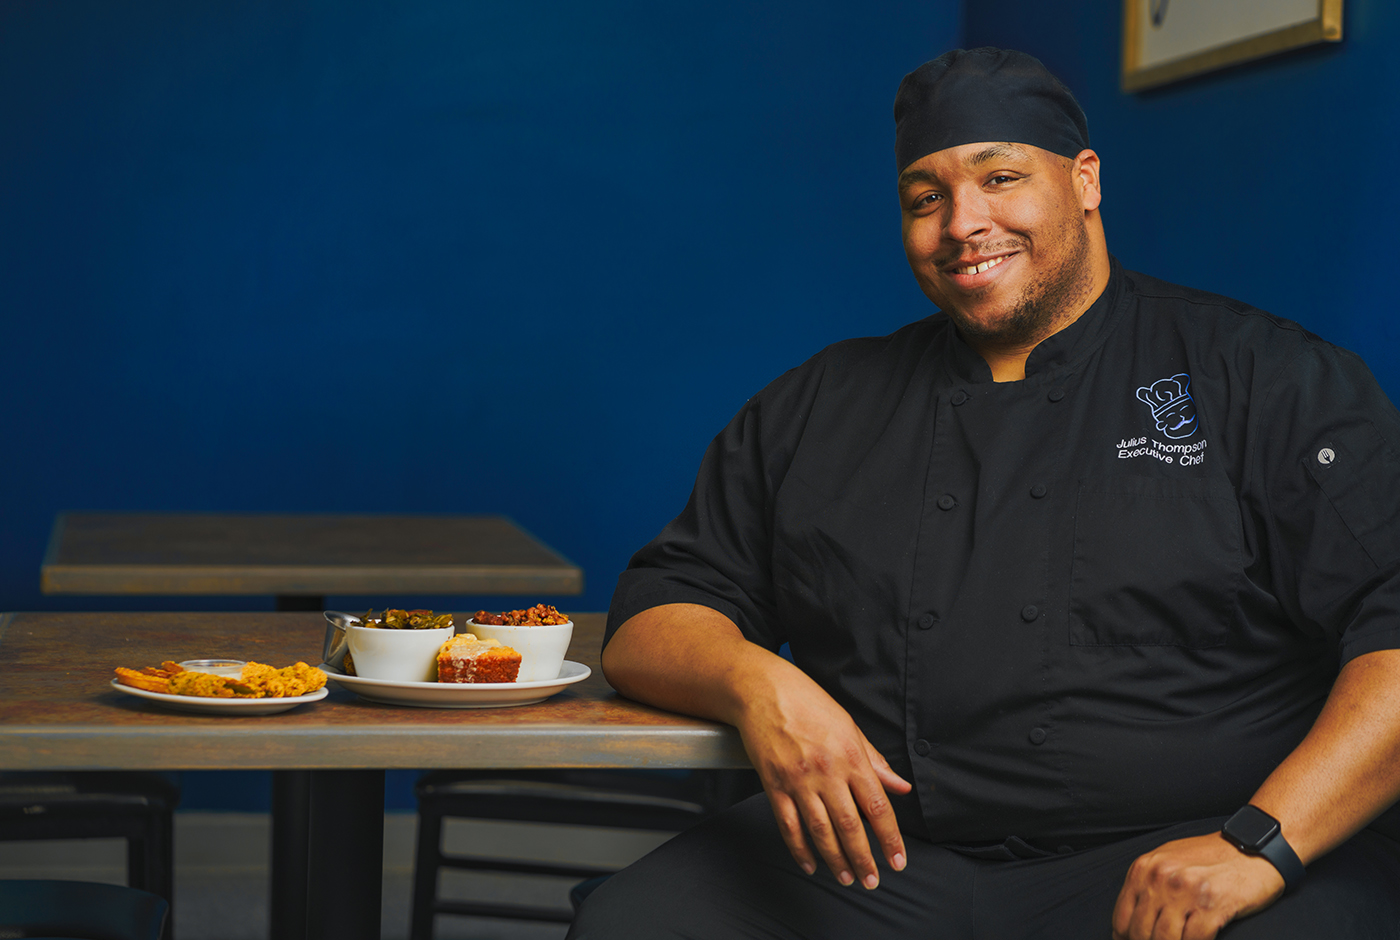 Julius Thompson, Head Chef and Owner of Sauce Boss Southern Kitchen, knows the one thing that can bring people together is food.